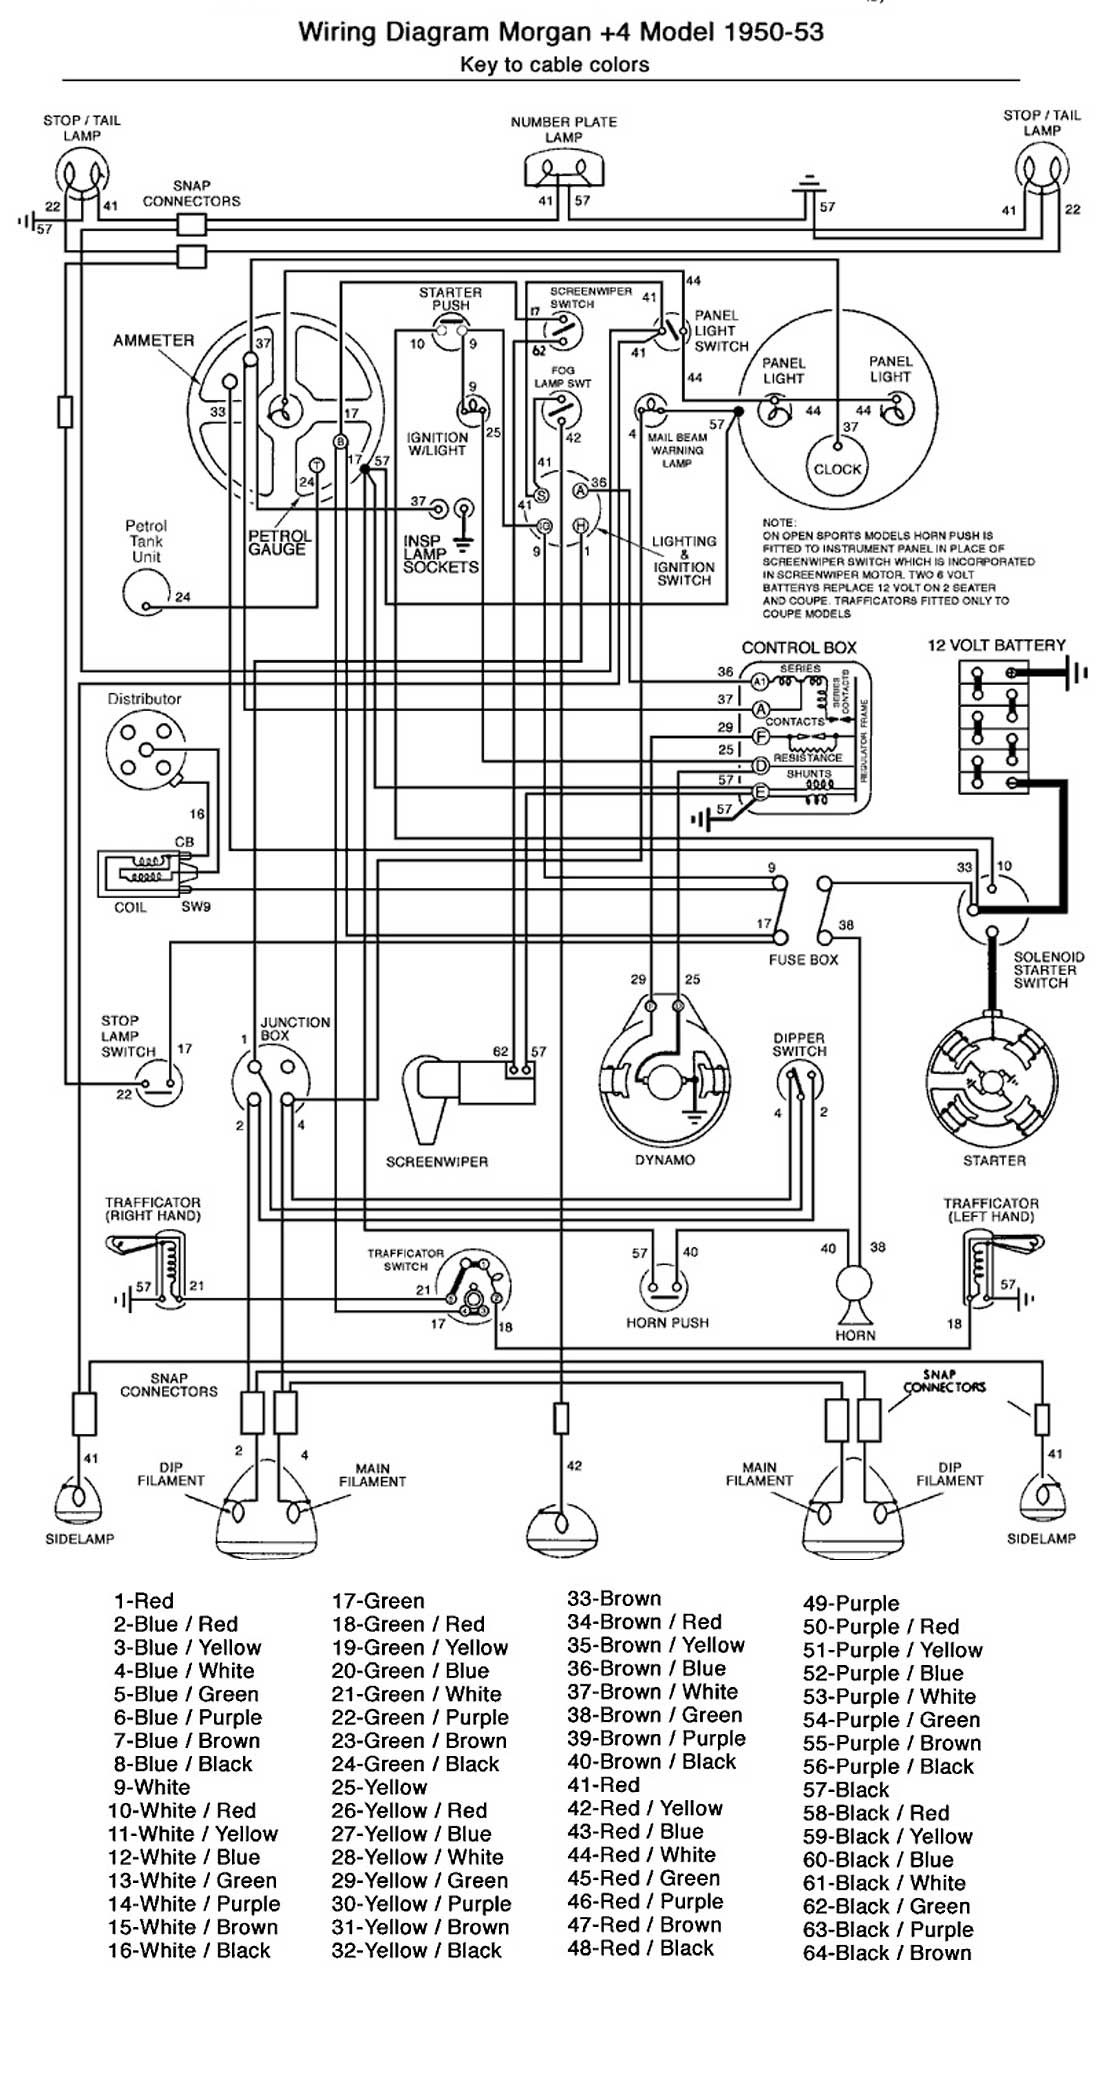 Morgan 8 Fuse Box 22 Wiring Diagram Images